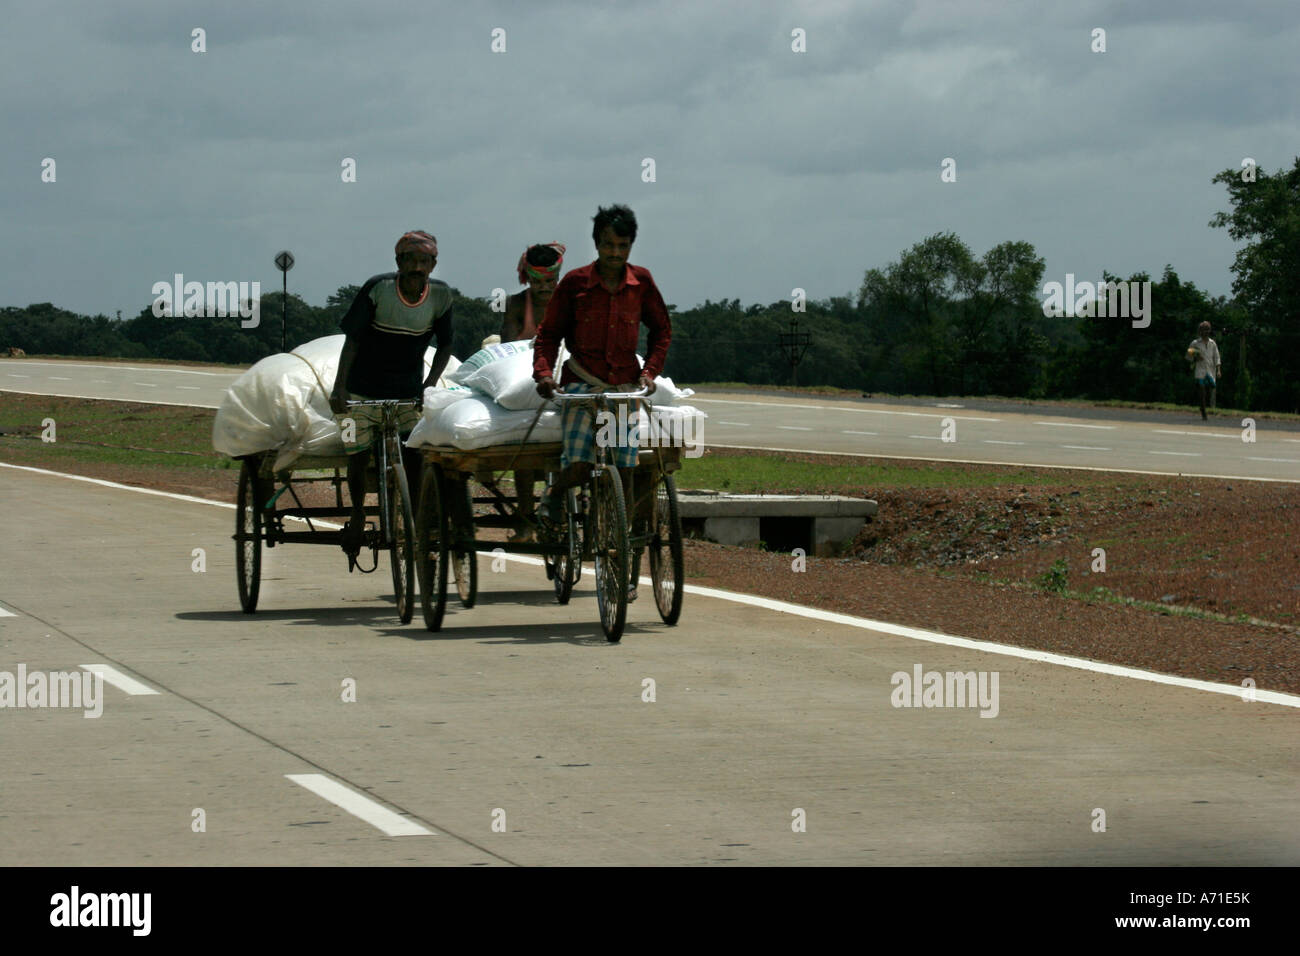 Three rickshaw puller speeding on the highway in the remote India - Stock Image